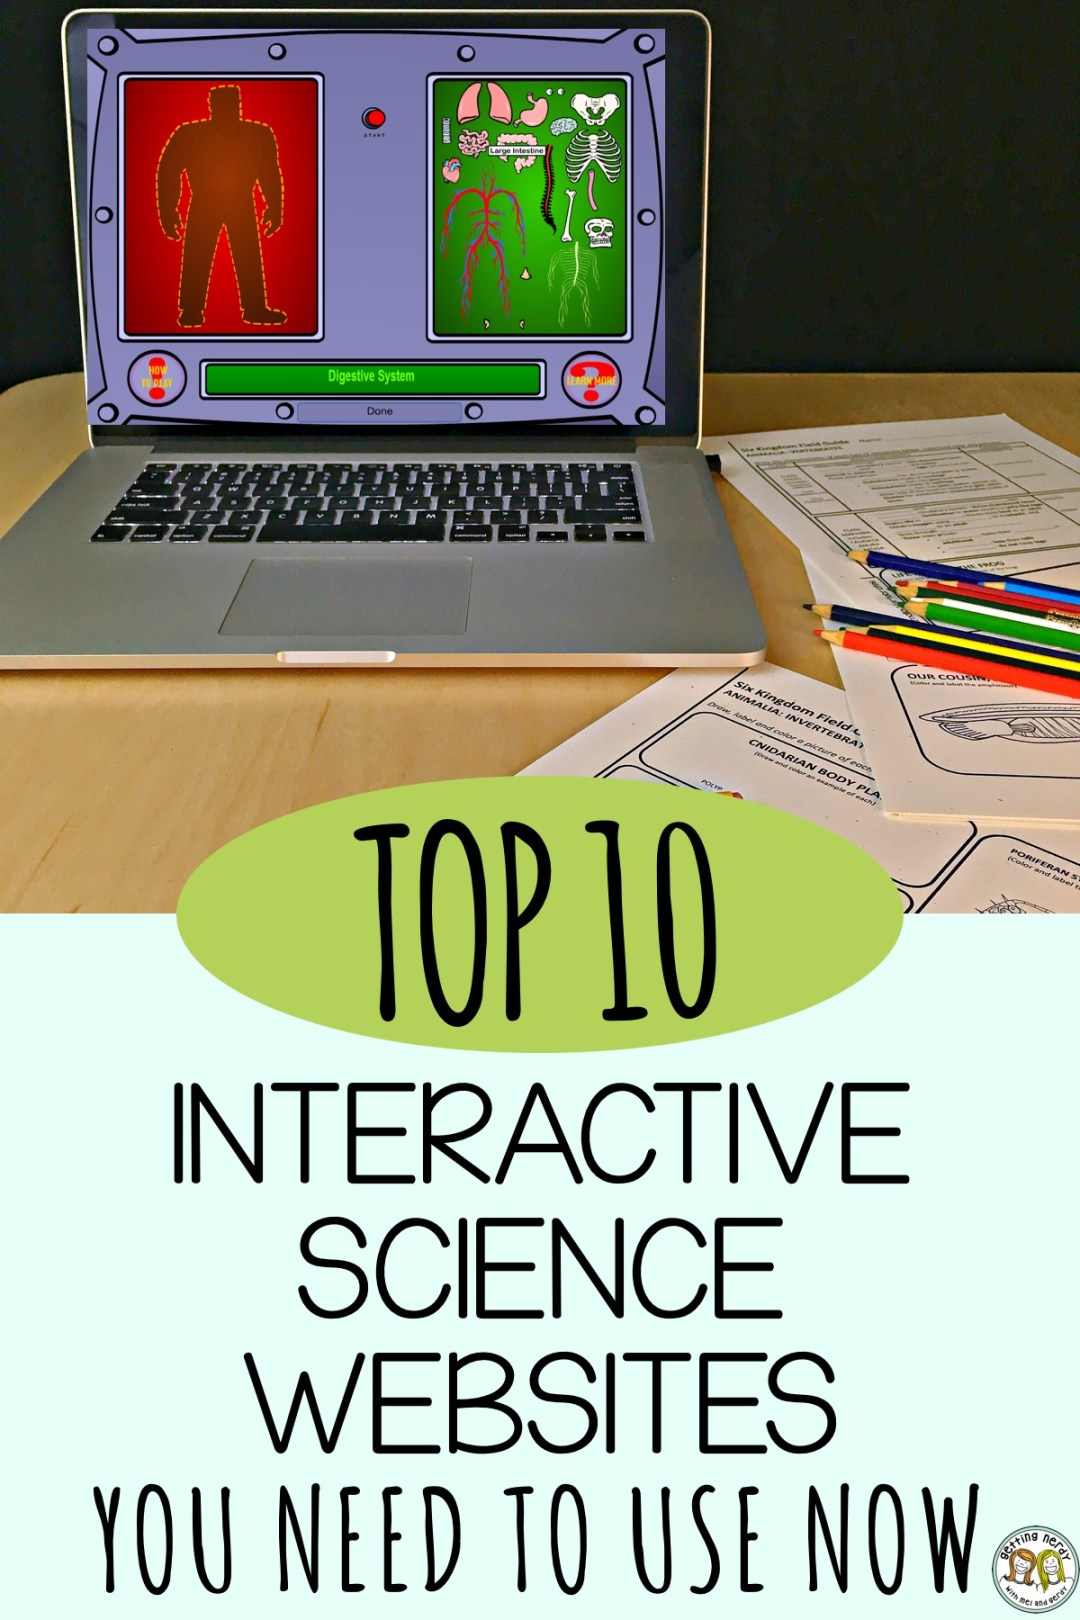 If you're looking for something fun to do while teaching science, here's our top ten list of interactive websites for scientific learning #gettingnerdyscience #interactivelearning #topsciencesites